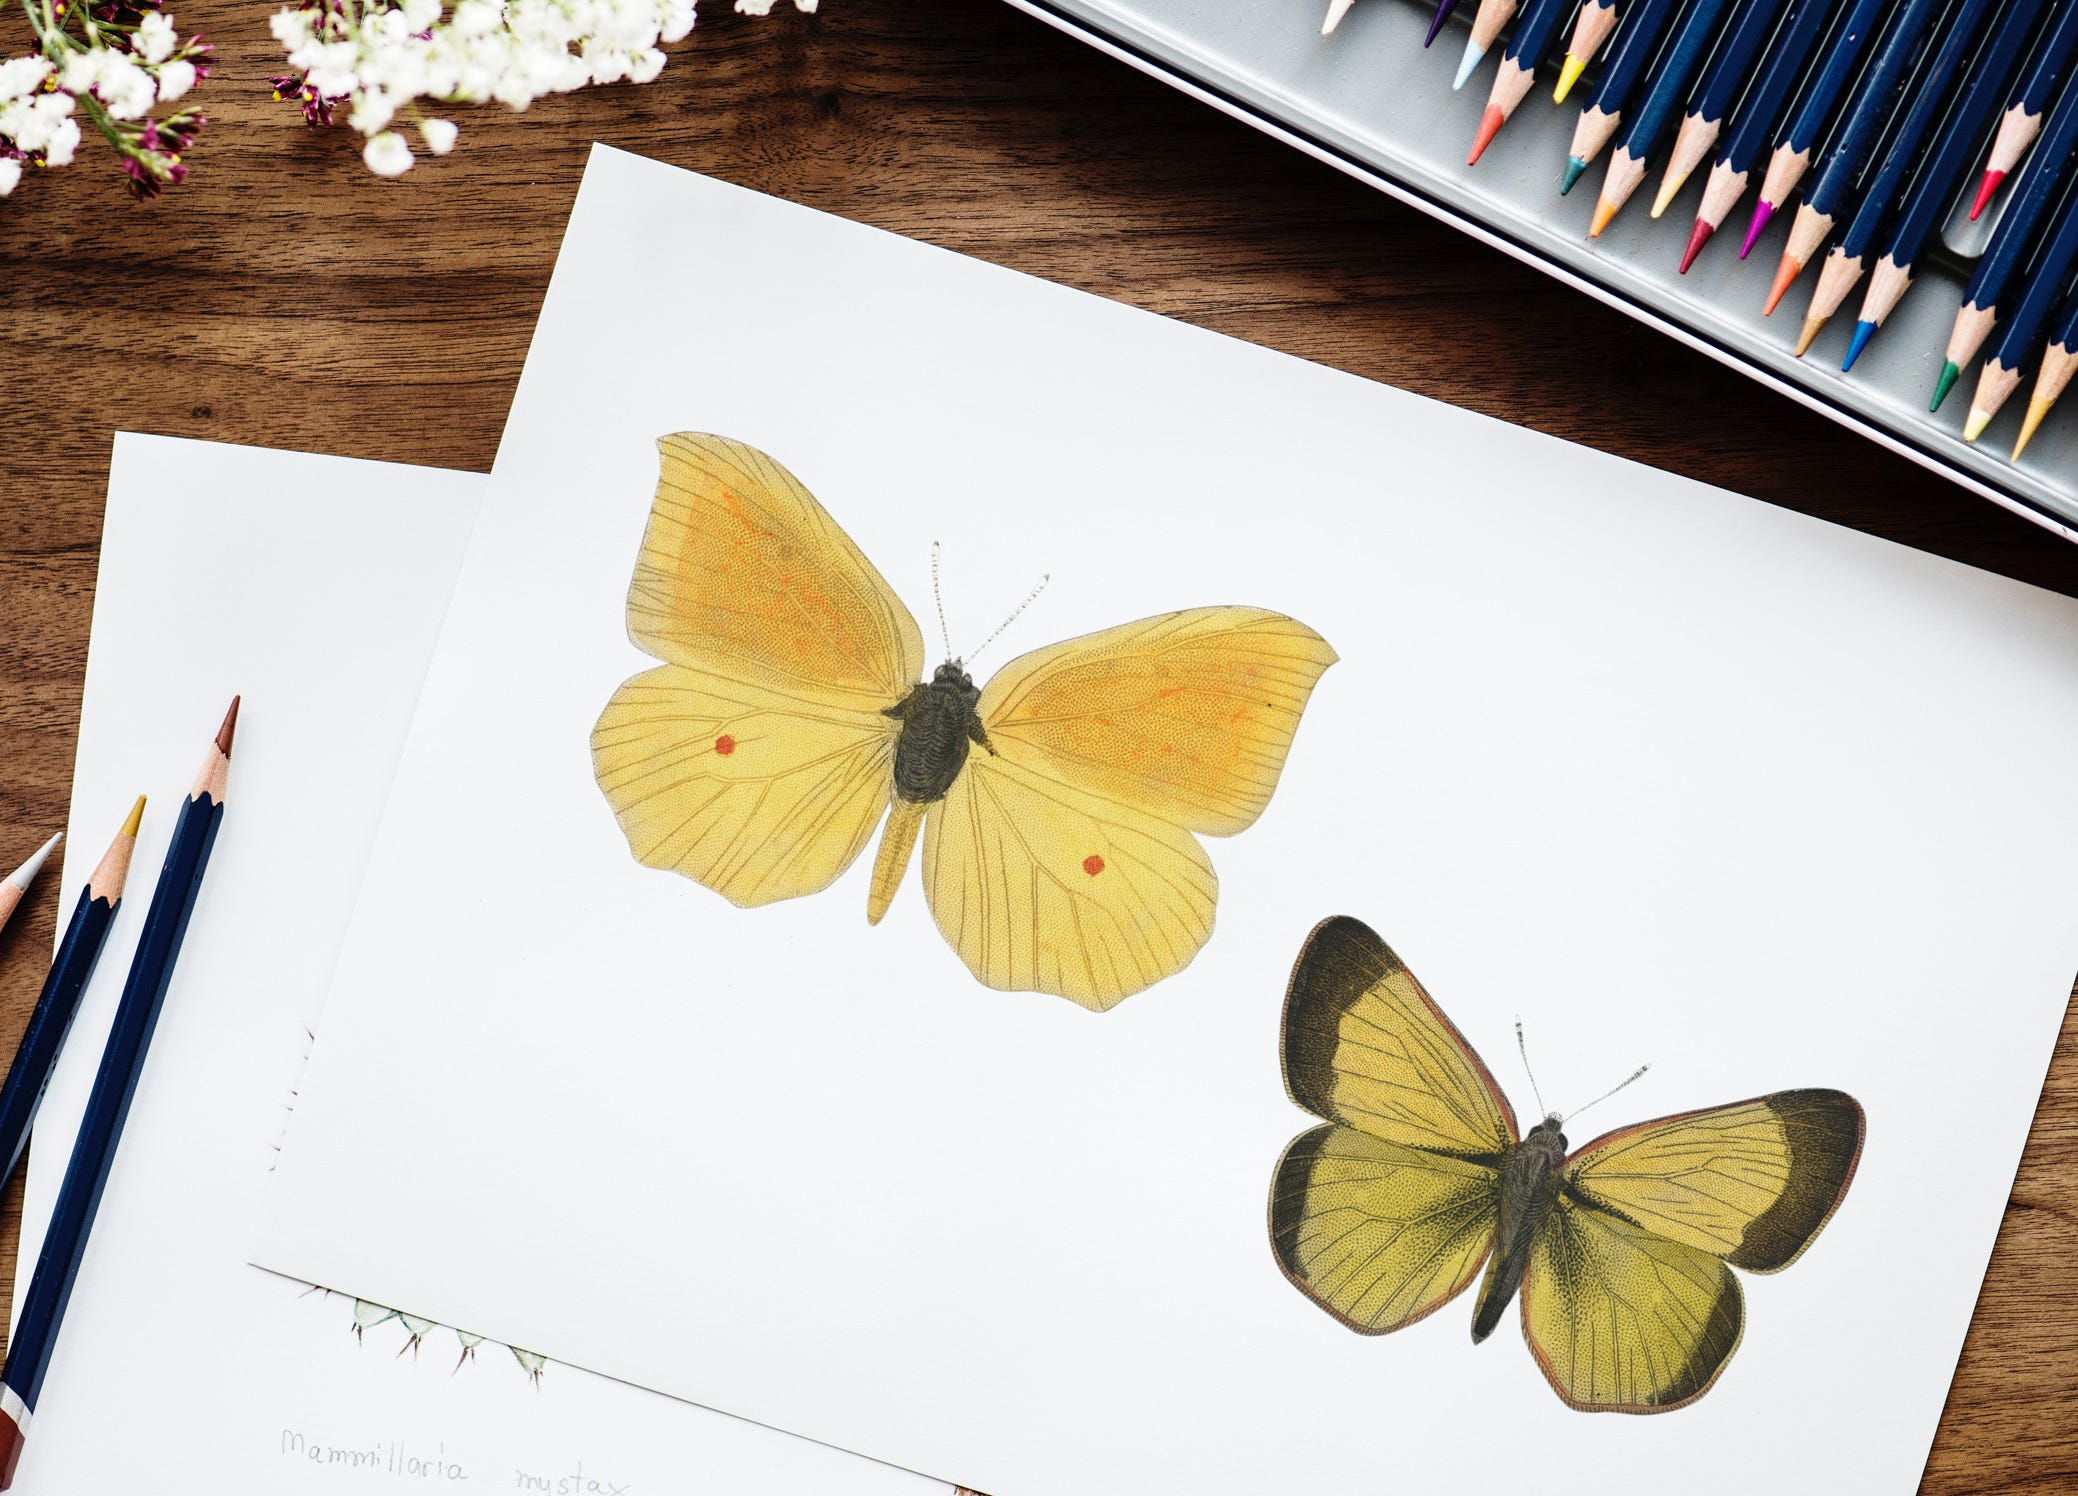 15 drawing ideas that anyone can try image 13